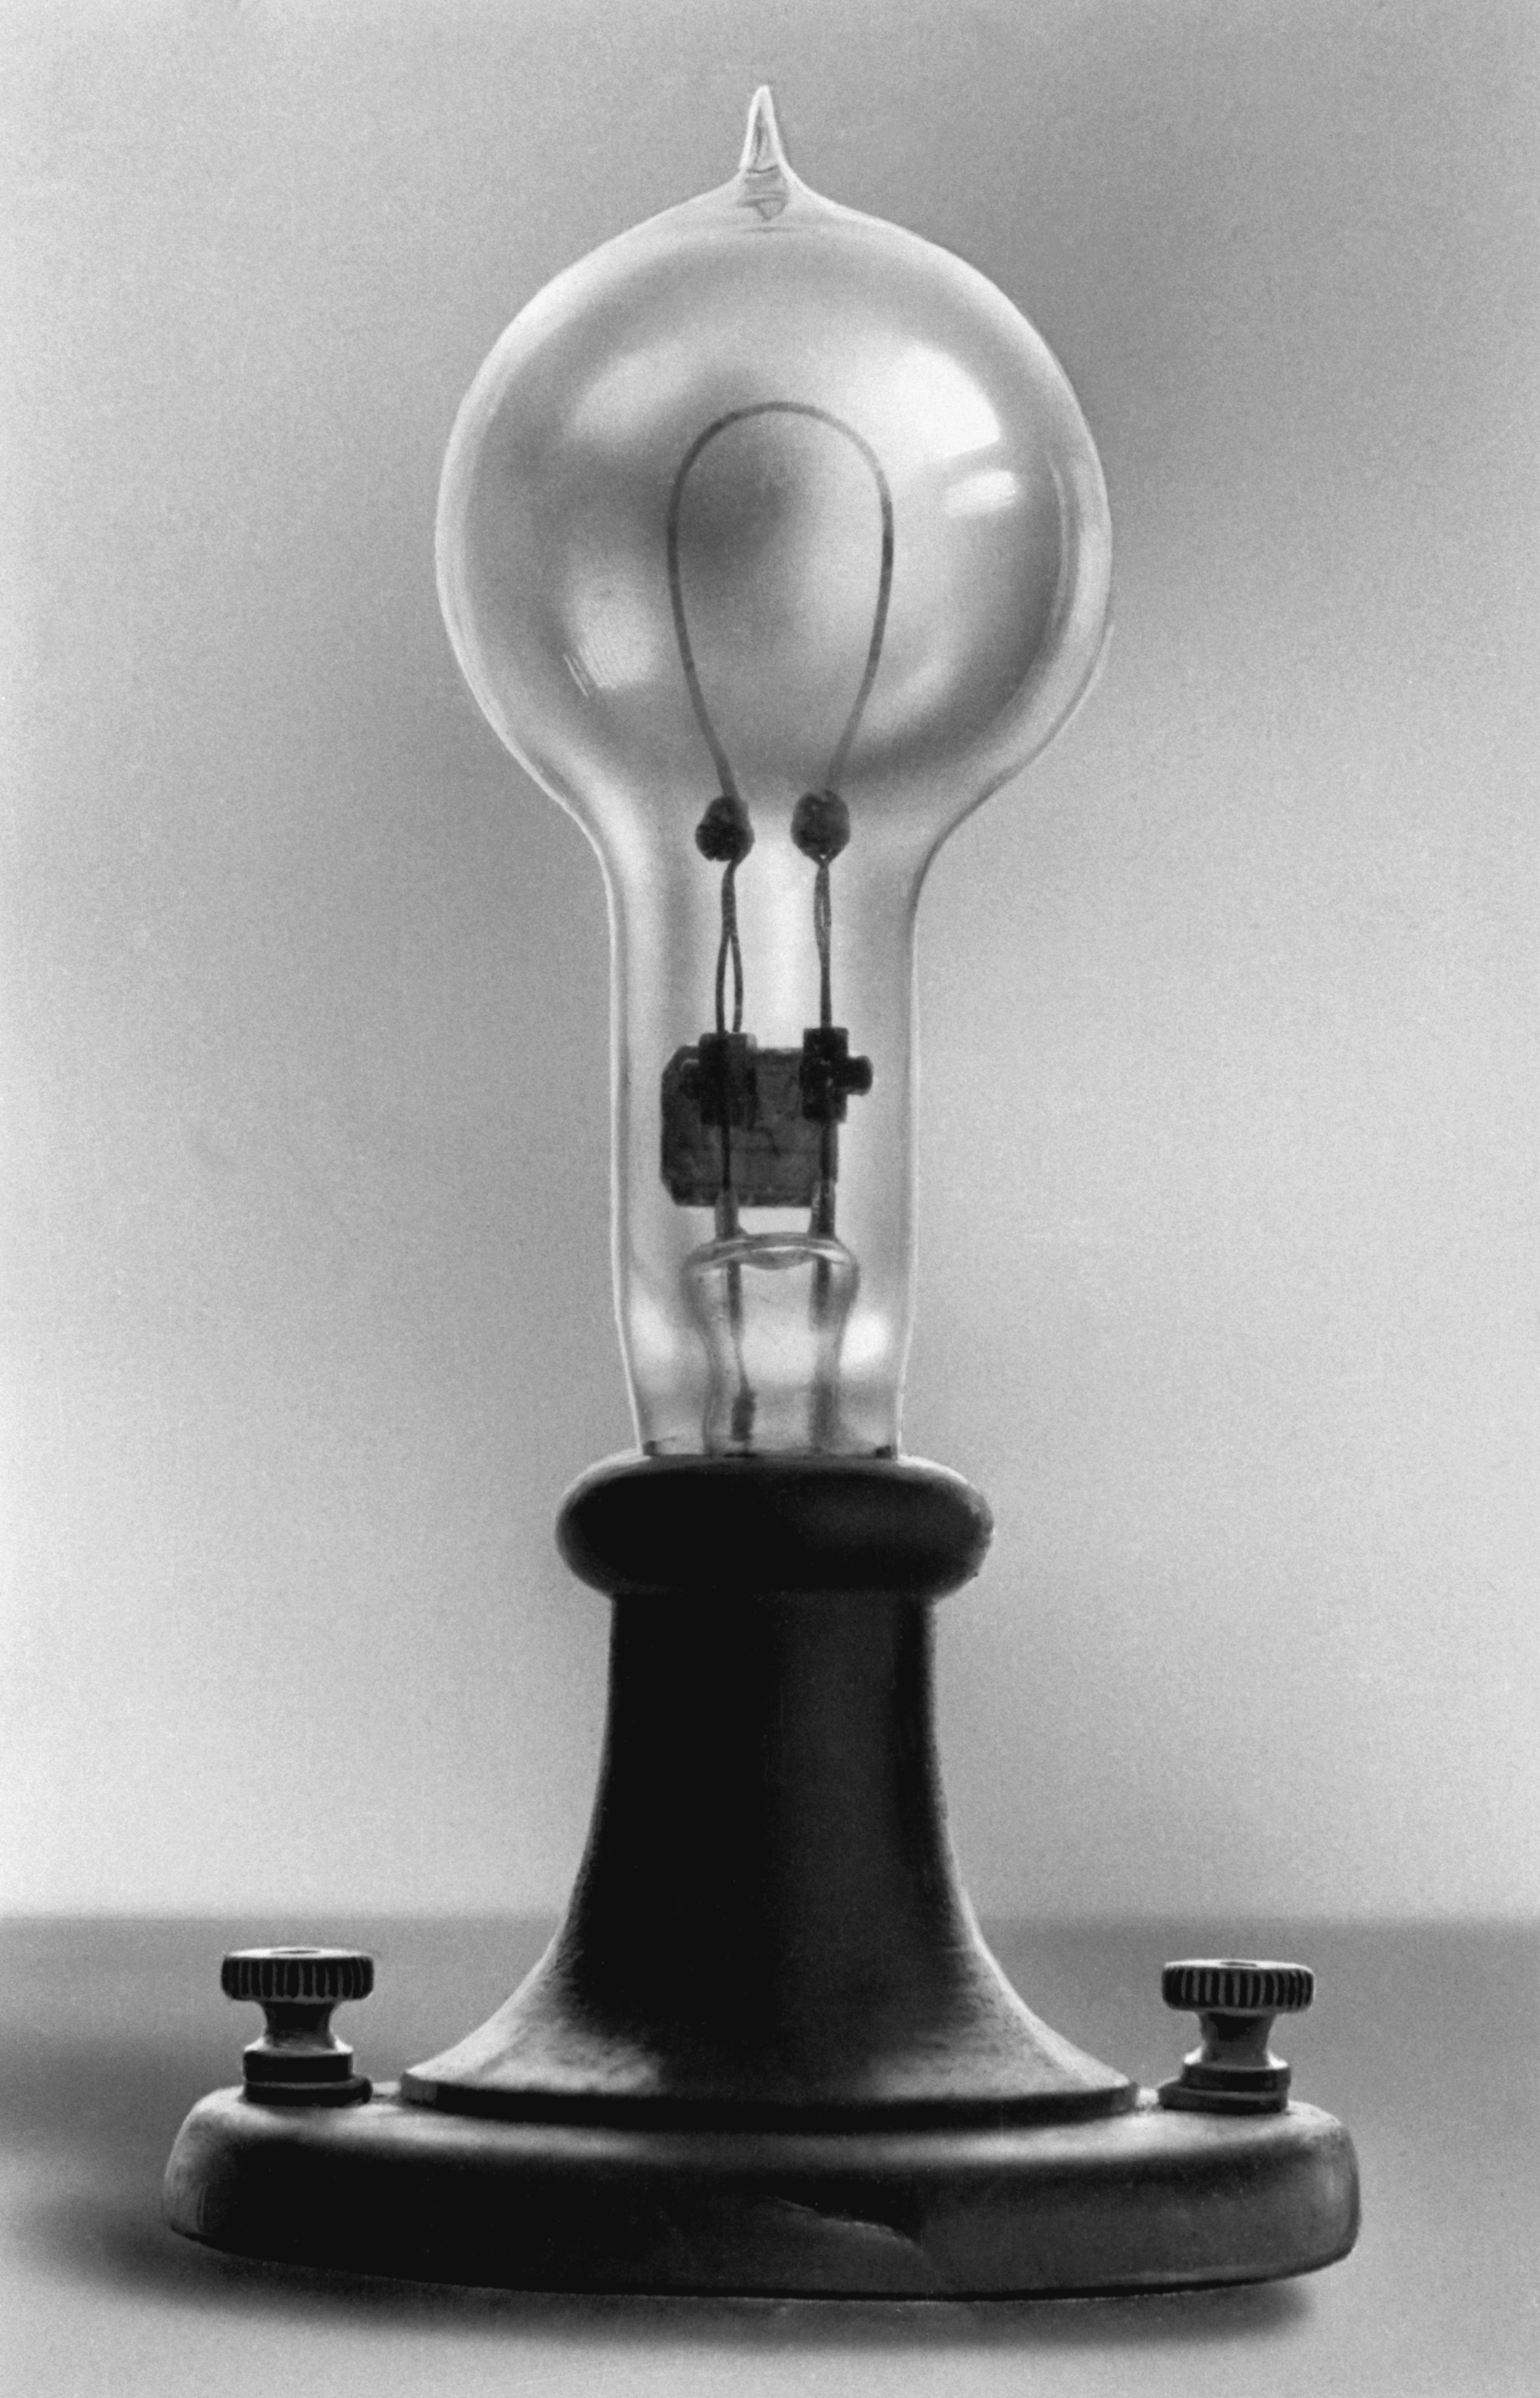 thomas edison light bulb images pictures becuo. Black Bedroom Furniture Sets. Home Design Ideas